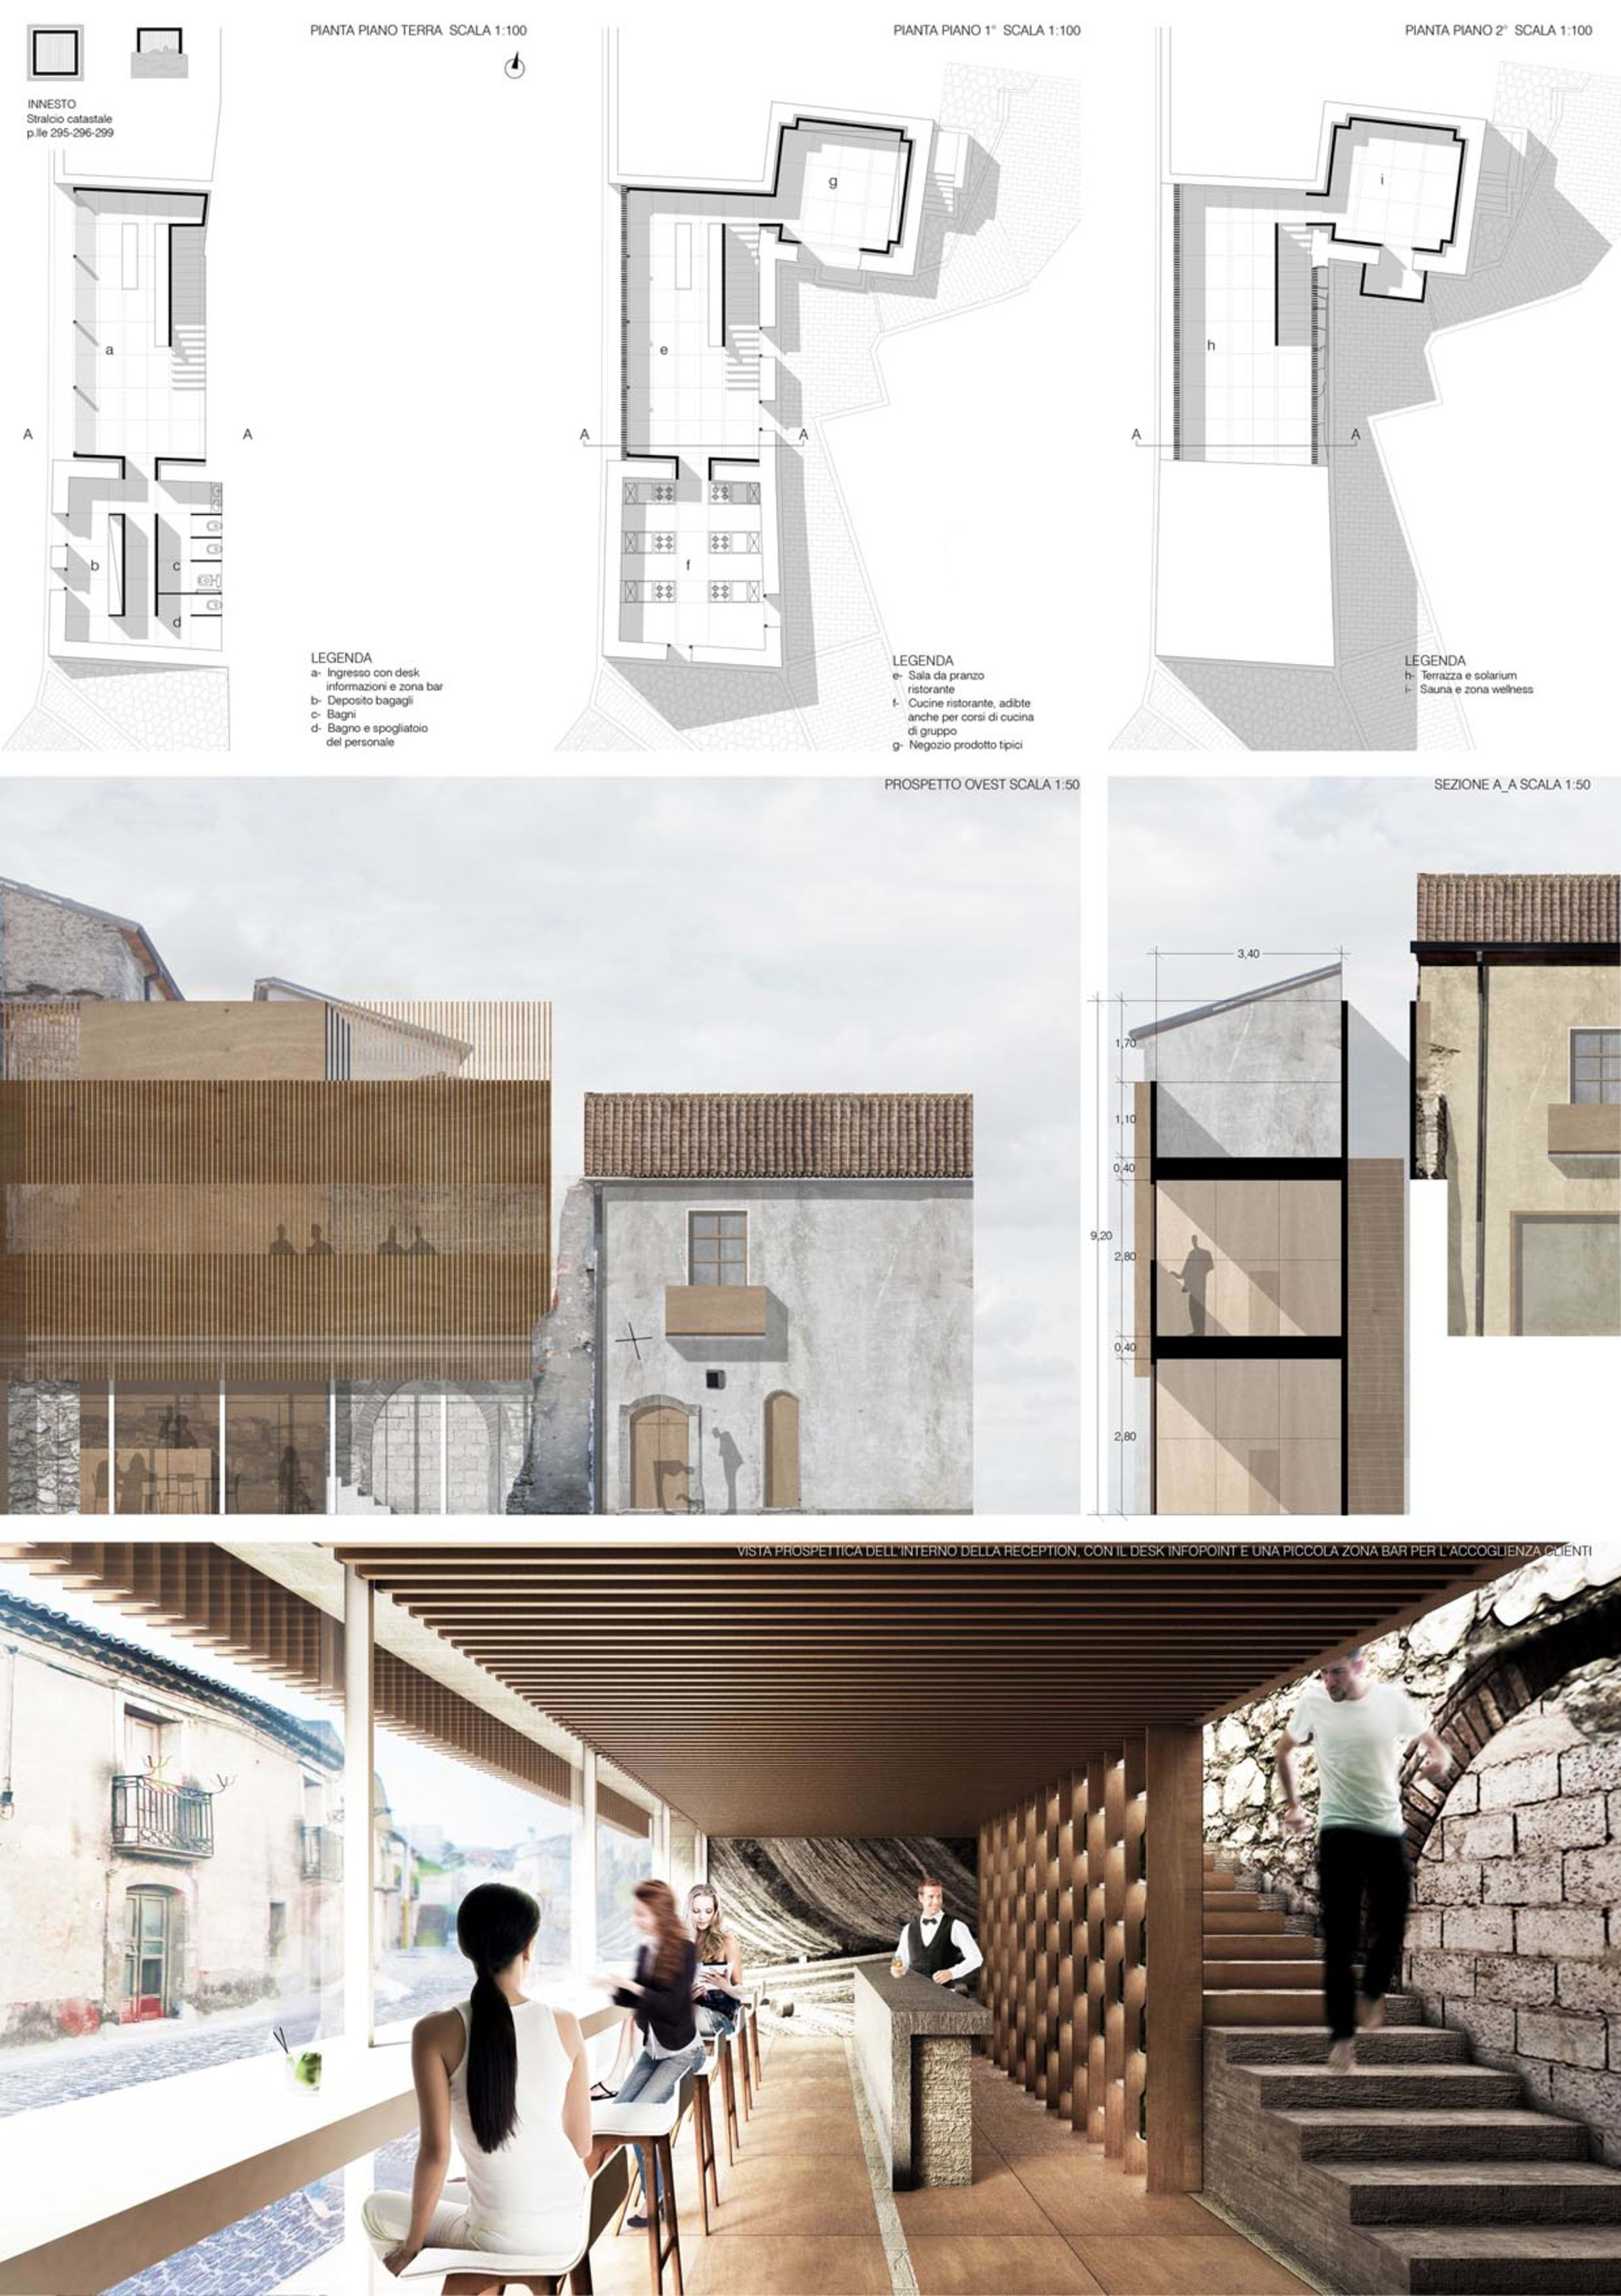 Pin by max menegale on archviz | Pinterest | Architecture ...